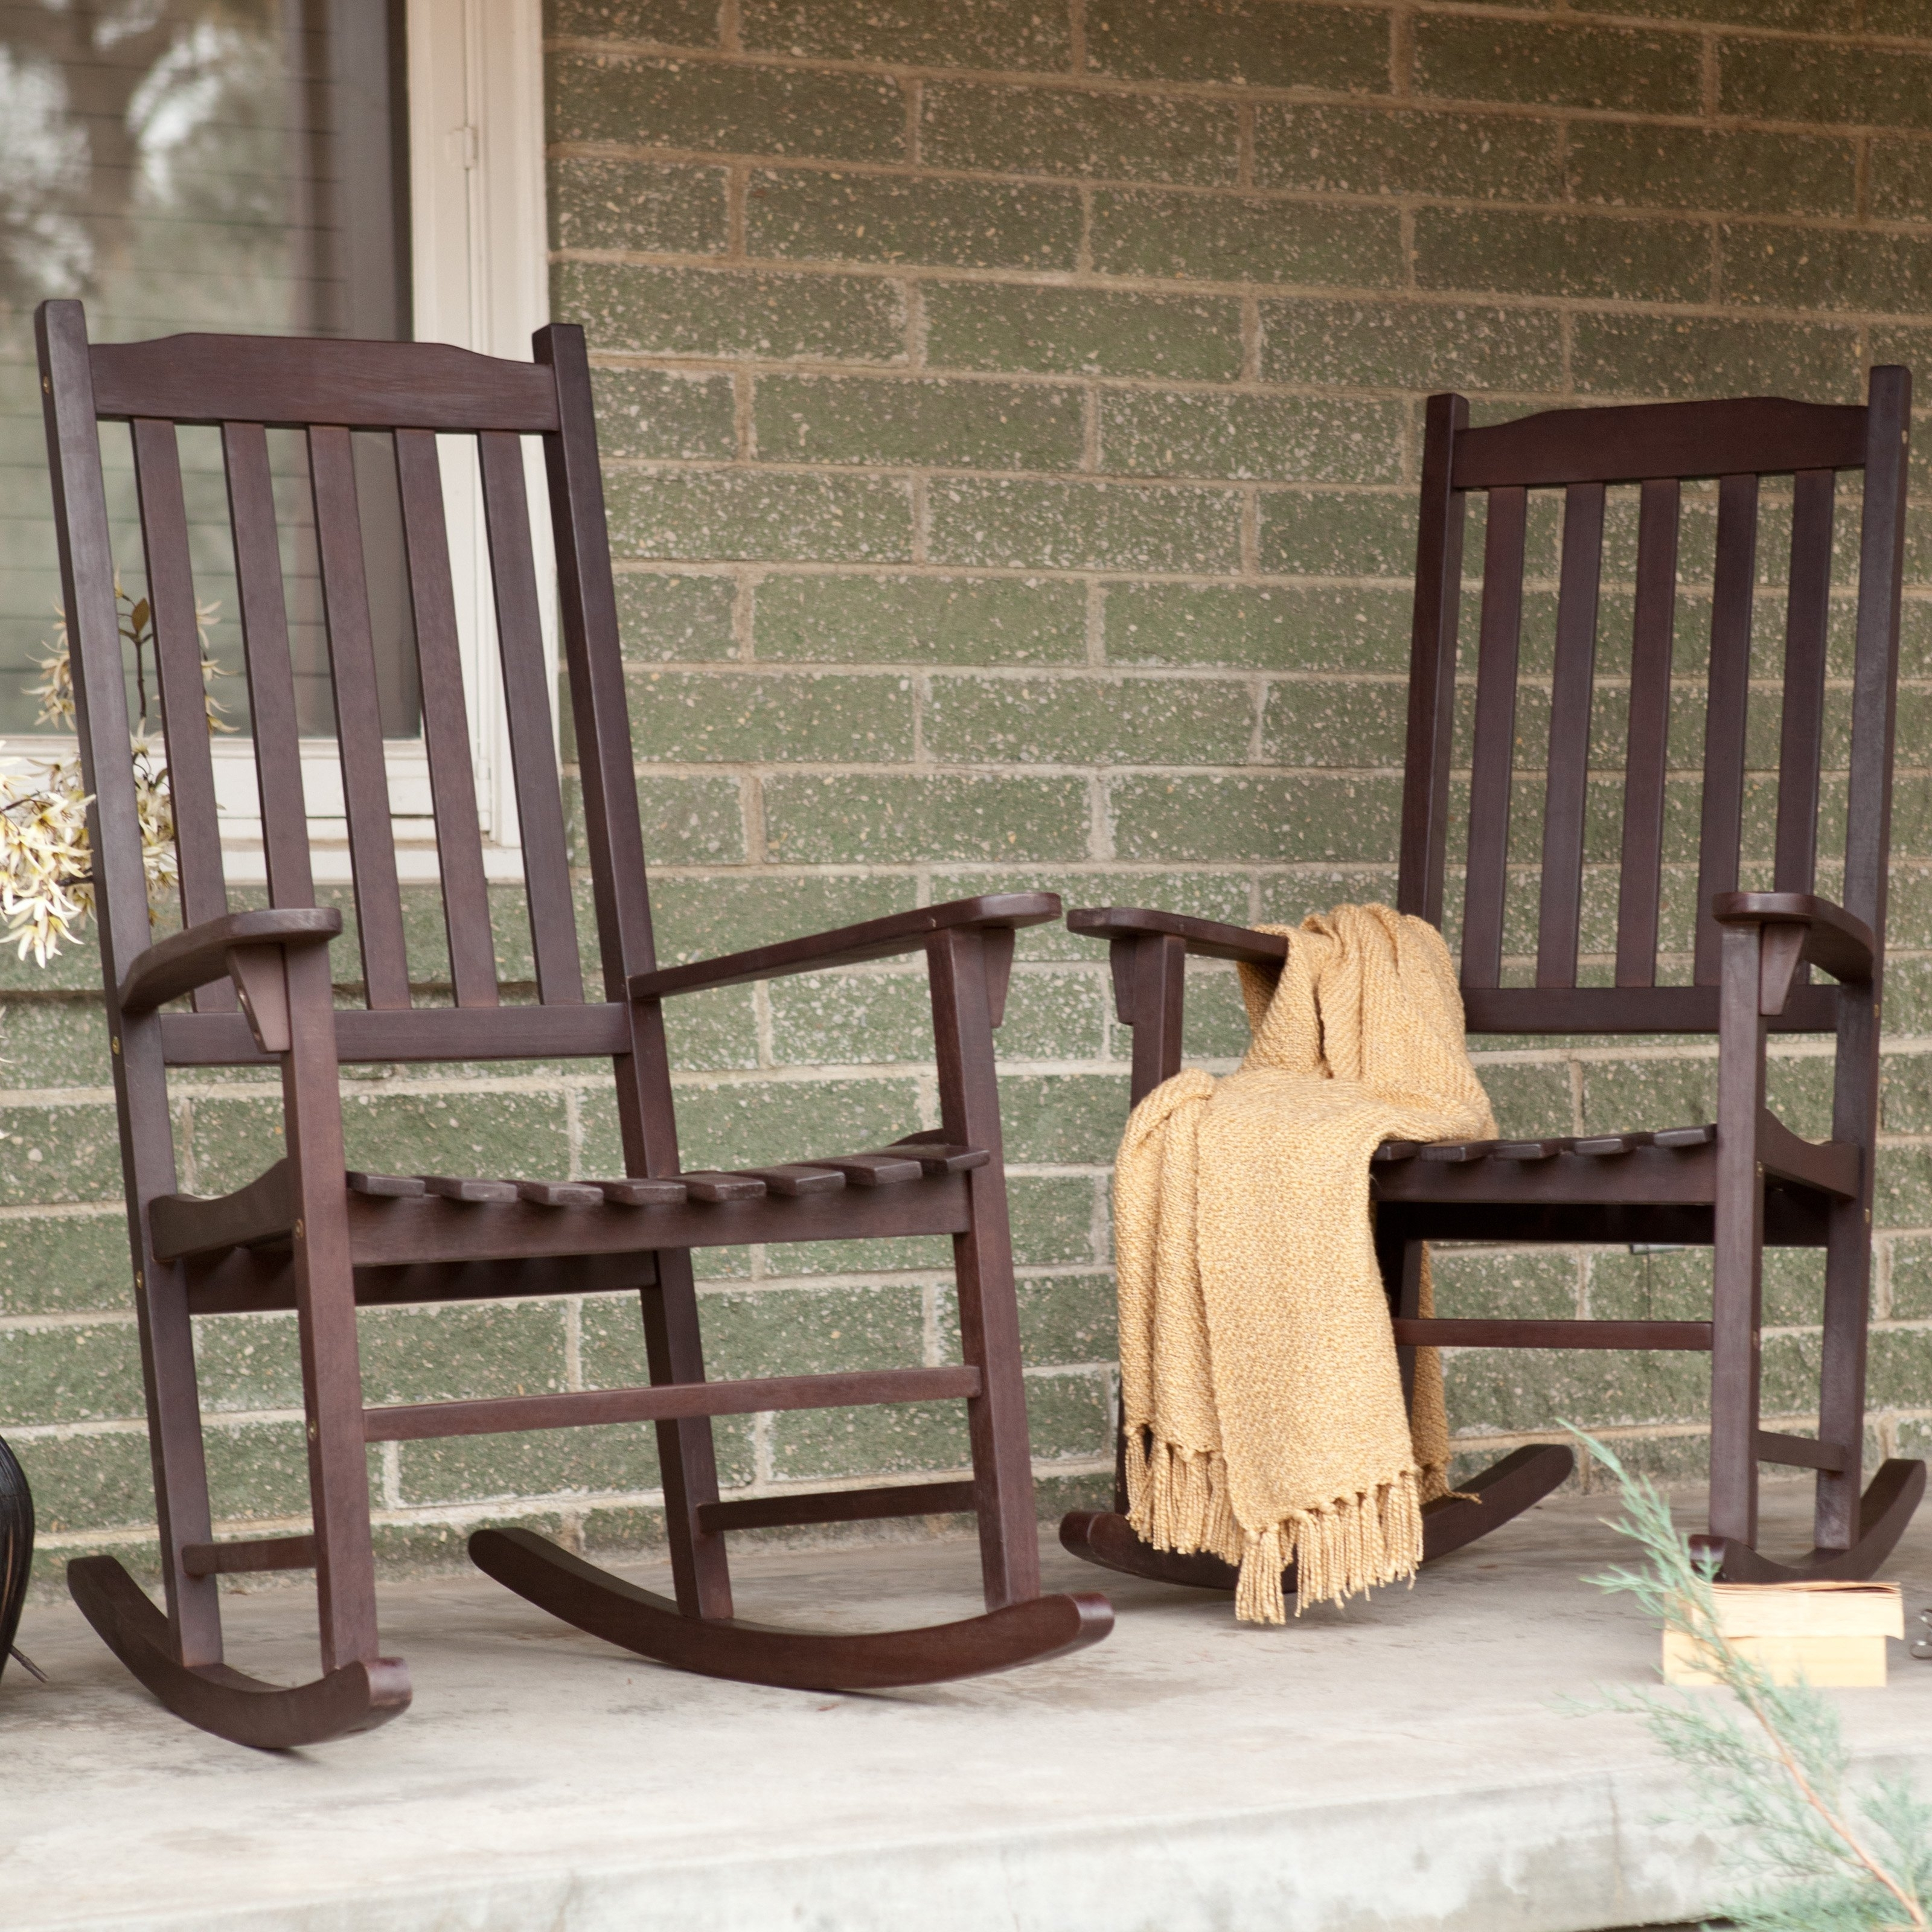 Garden & Patio Furniture : Outdoor Wooden Rocking Chairs New Chairs With Well Known Rocking Chair Outdoor Wooden (View 6 of 20)